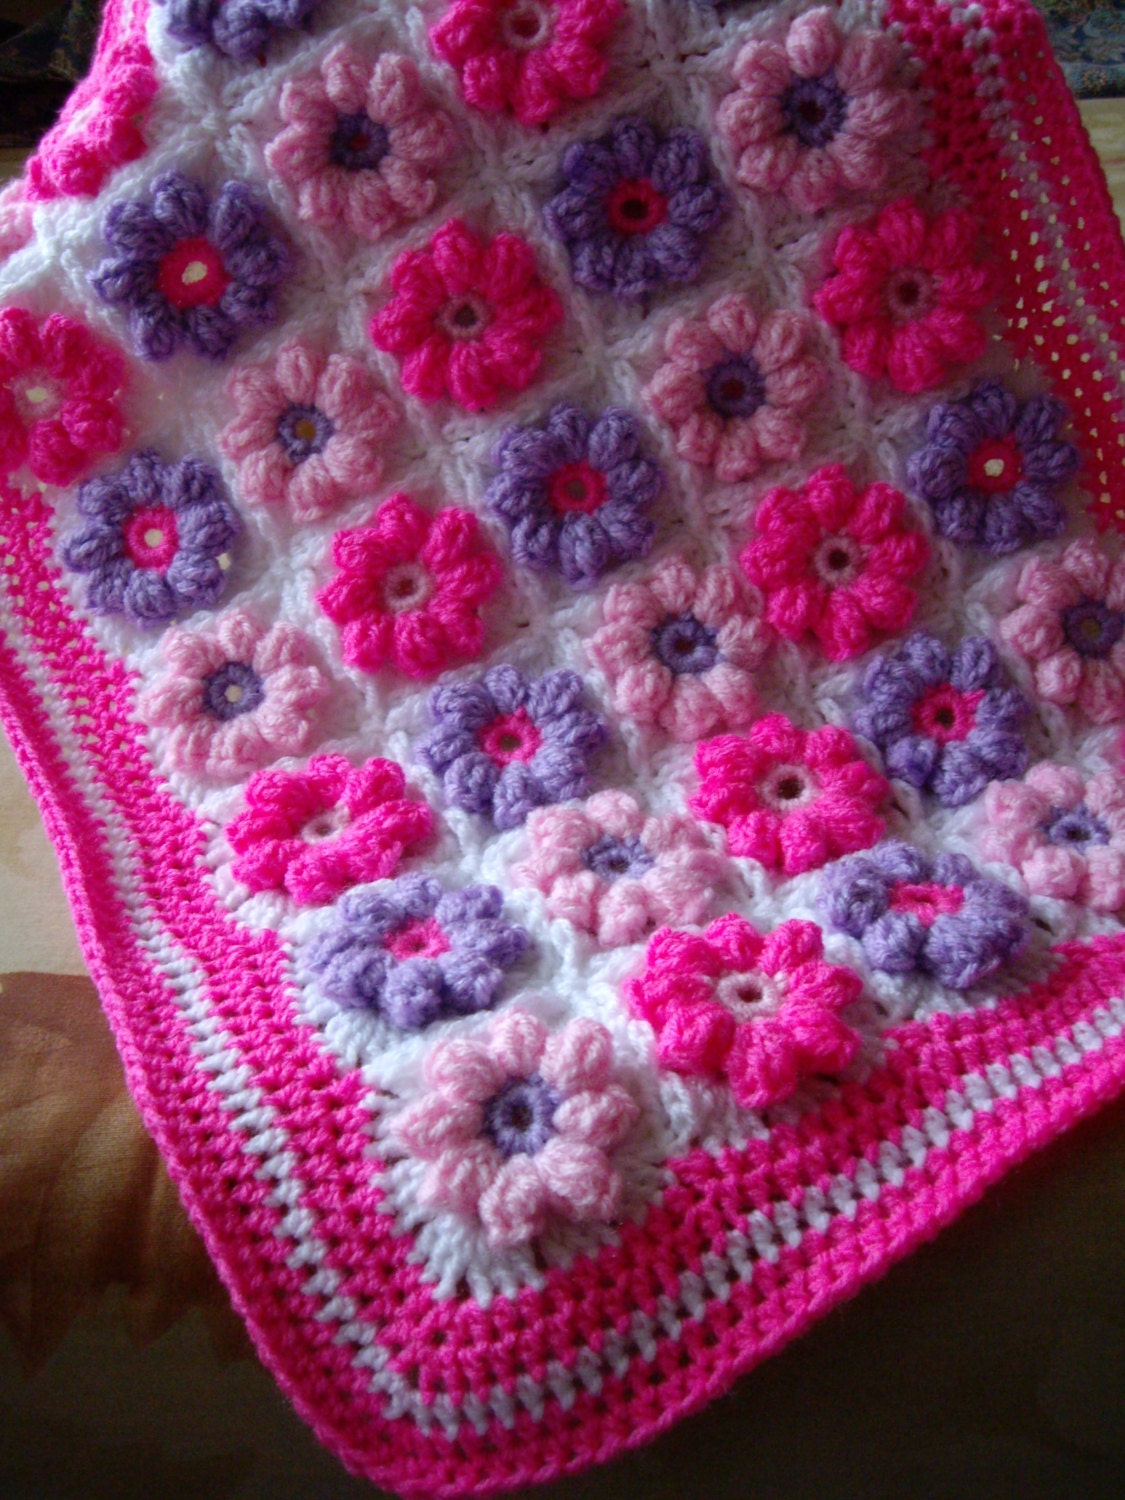 Granny Square American girl doll blanket...Knitted 18 inches doll blanket...Pink harmony doll afghan...